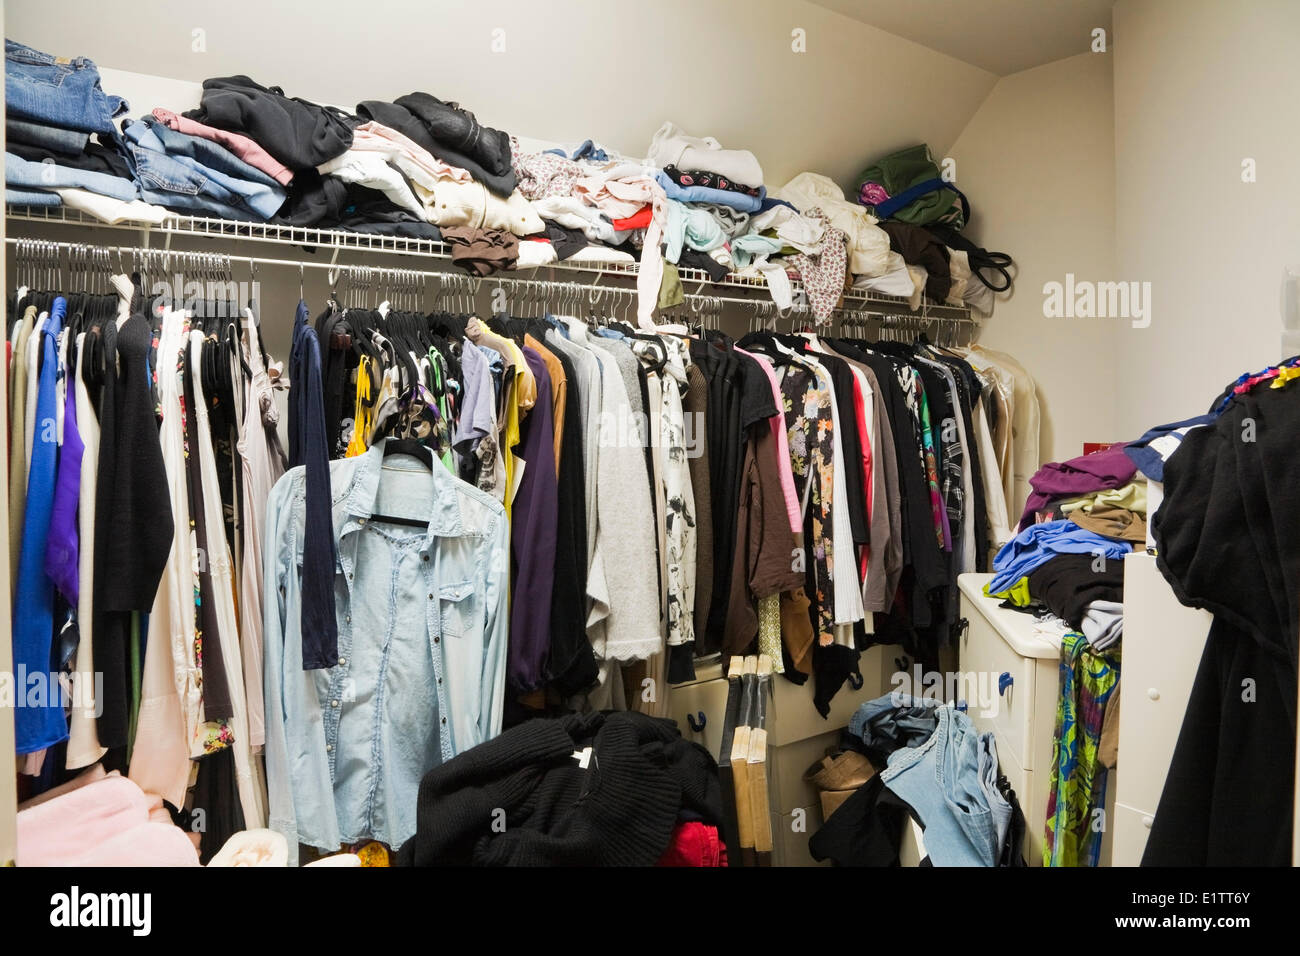 Walk-in closet filled with woman's clothes inside a luxurious cottage style residential home, Montreal, Quebec, - Stock Image